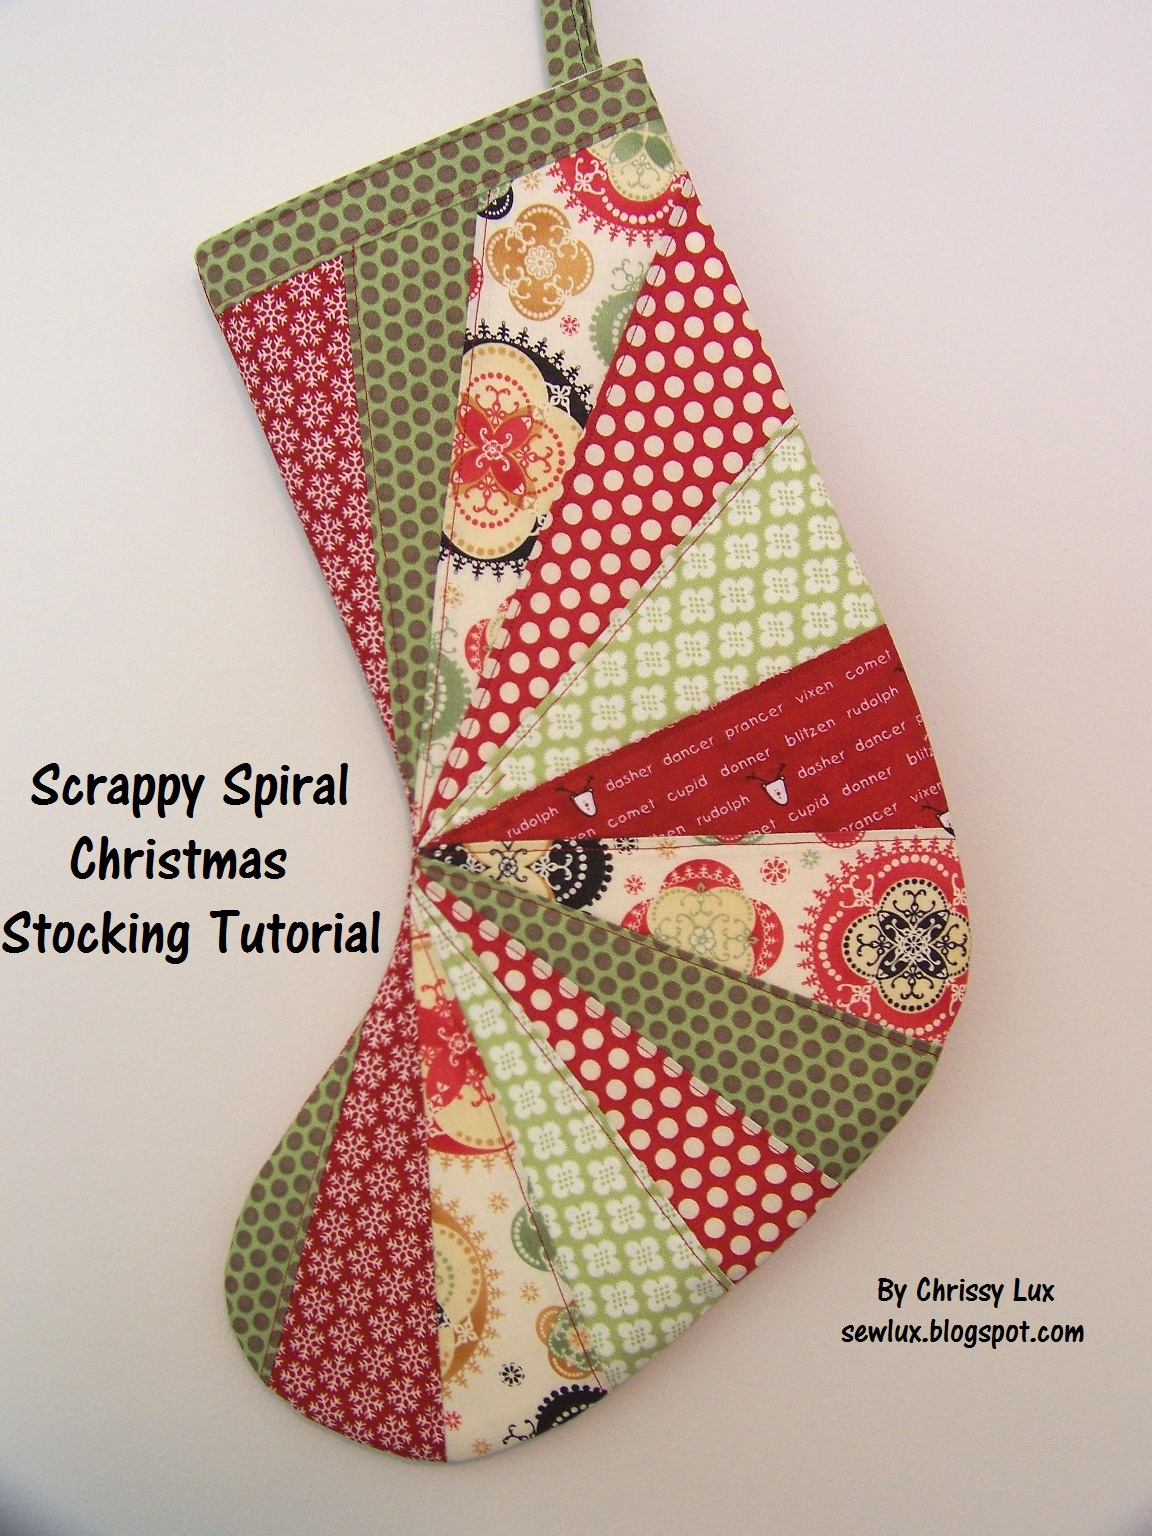 Sew Lux Fabric : Blog: Scrappy Spiral Stocking Tutorial : pattern for quilted christmas stocking - Adamdwight.com